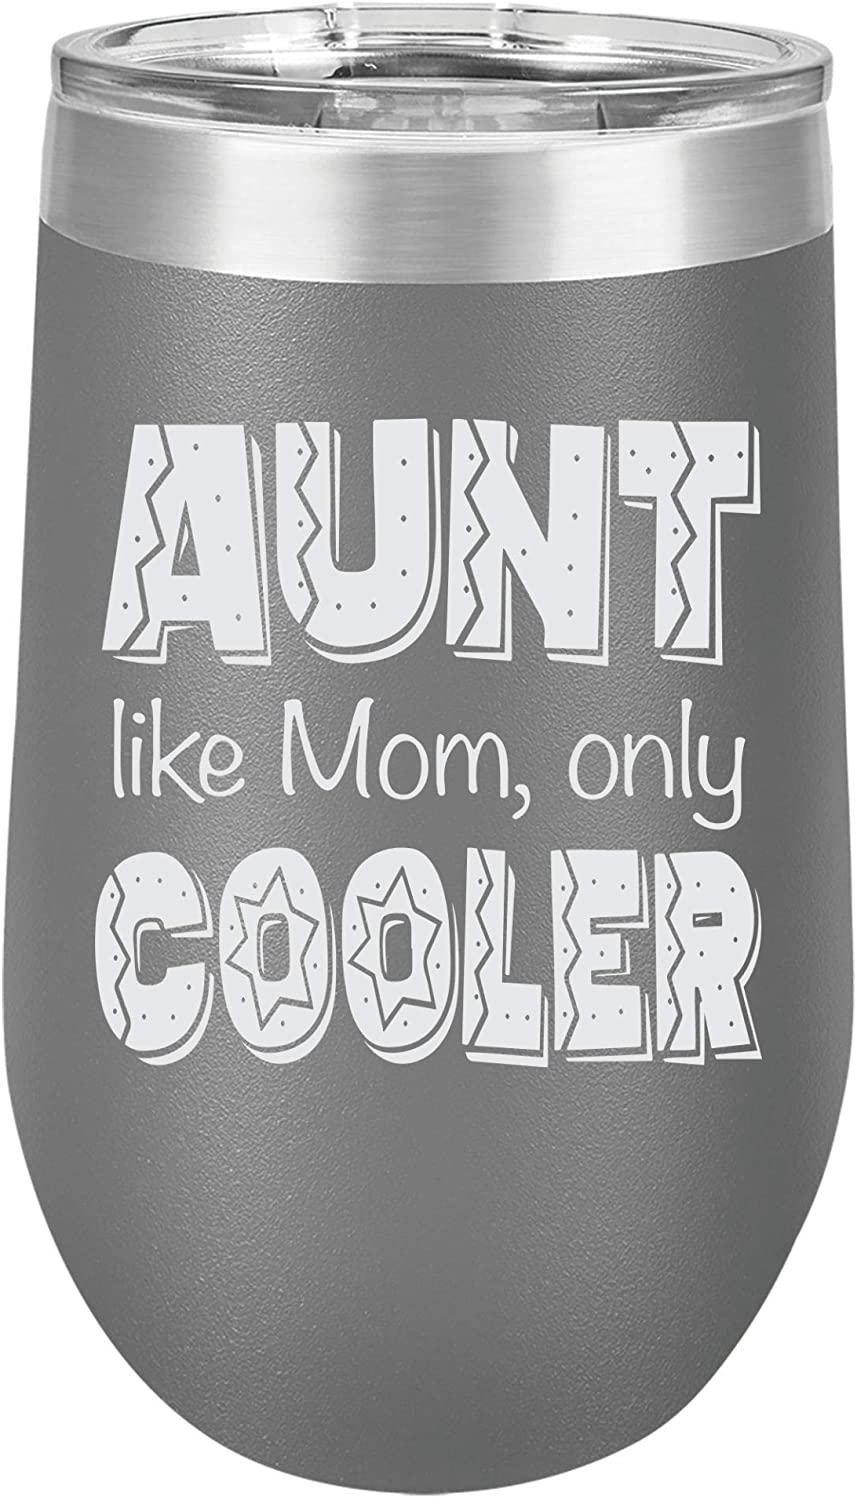 Aunt Like Mom Only Cooler Engraved Large Stainless Steel Wine Tumbler, 16 Oz, Grey